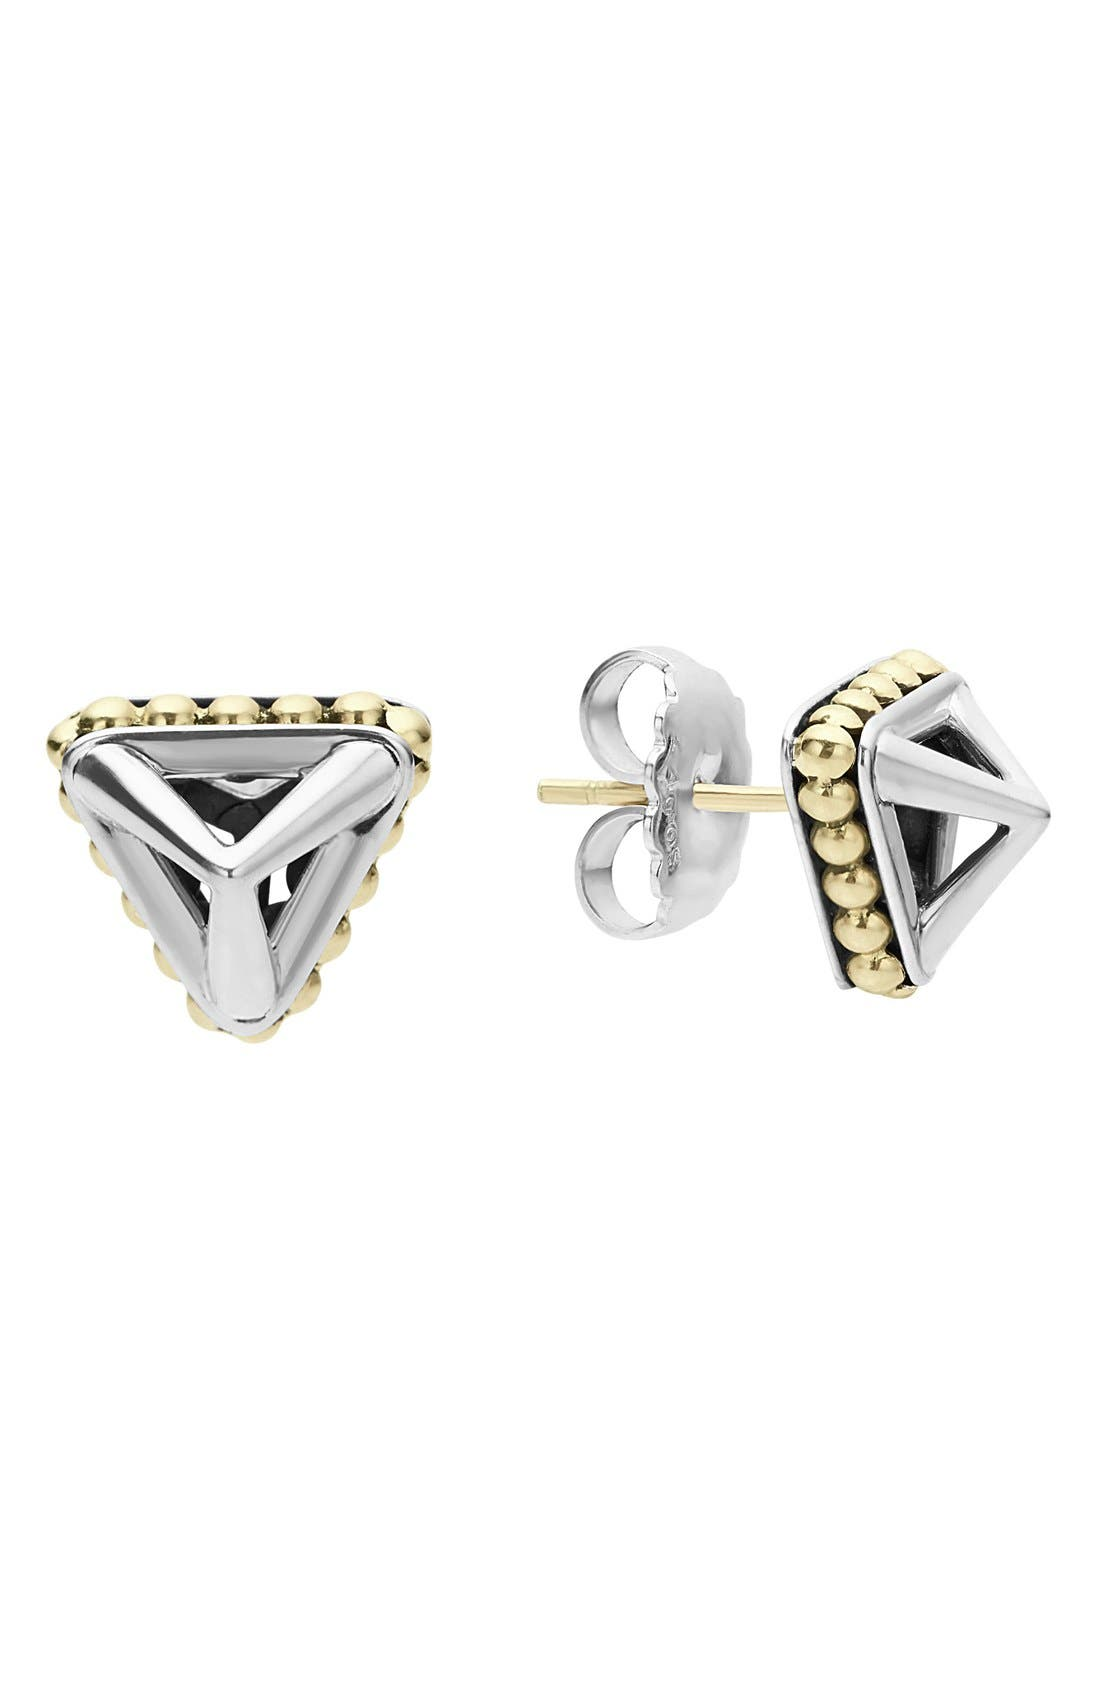 KSL Pyramid Stud Earrings,                         Main,                         color, SILVER/ GOLD